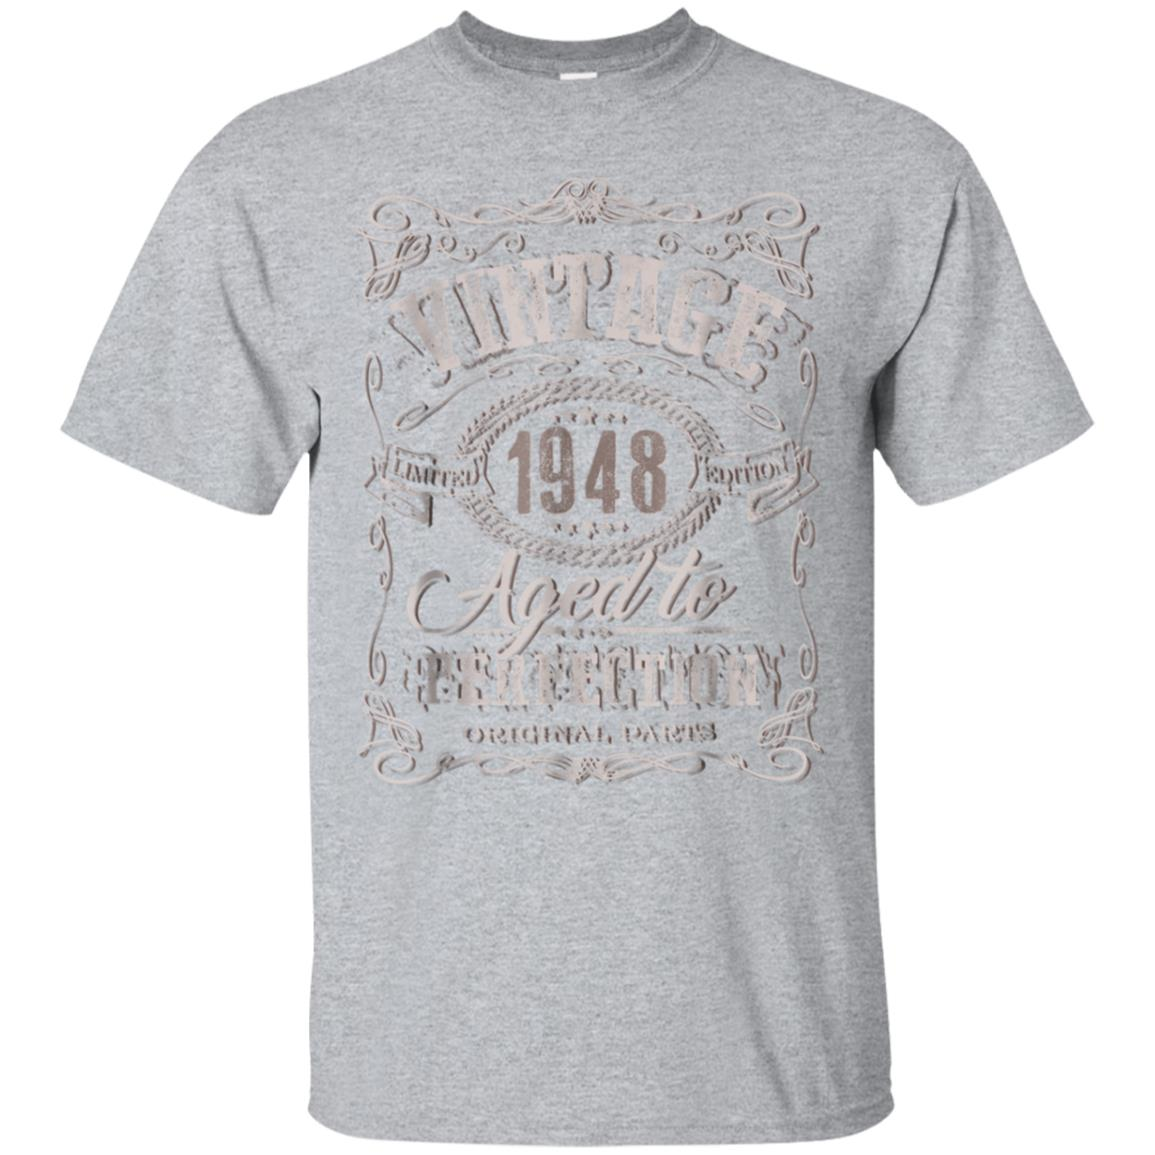 70th Birthday gift shirt Vintage dude 1948 70 year old shirt 99promocode